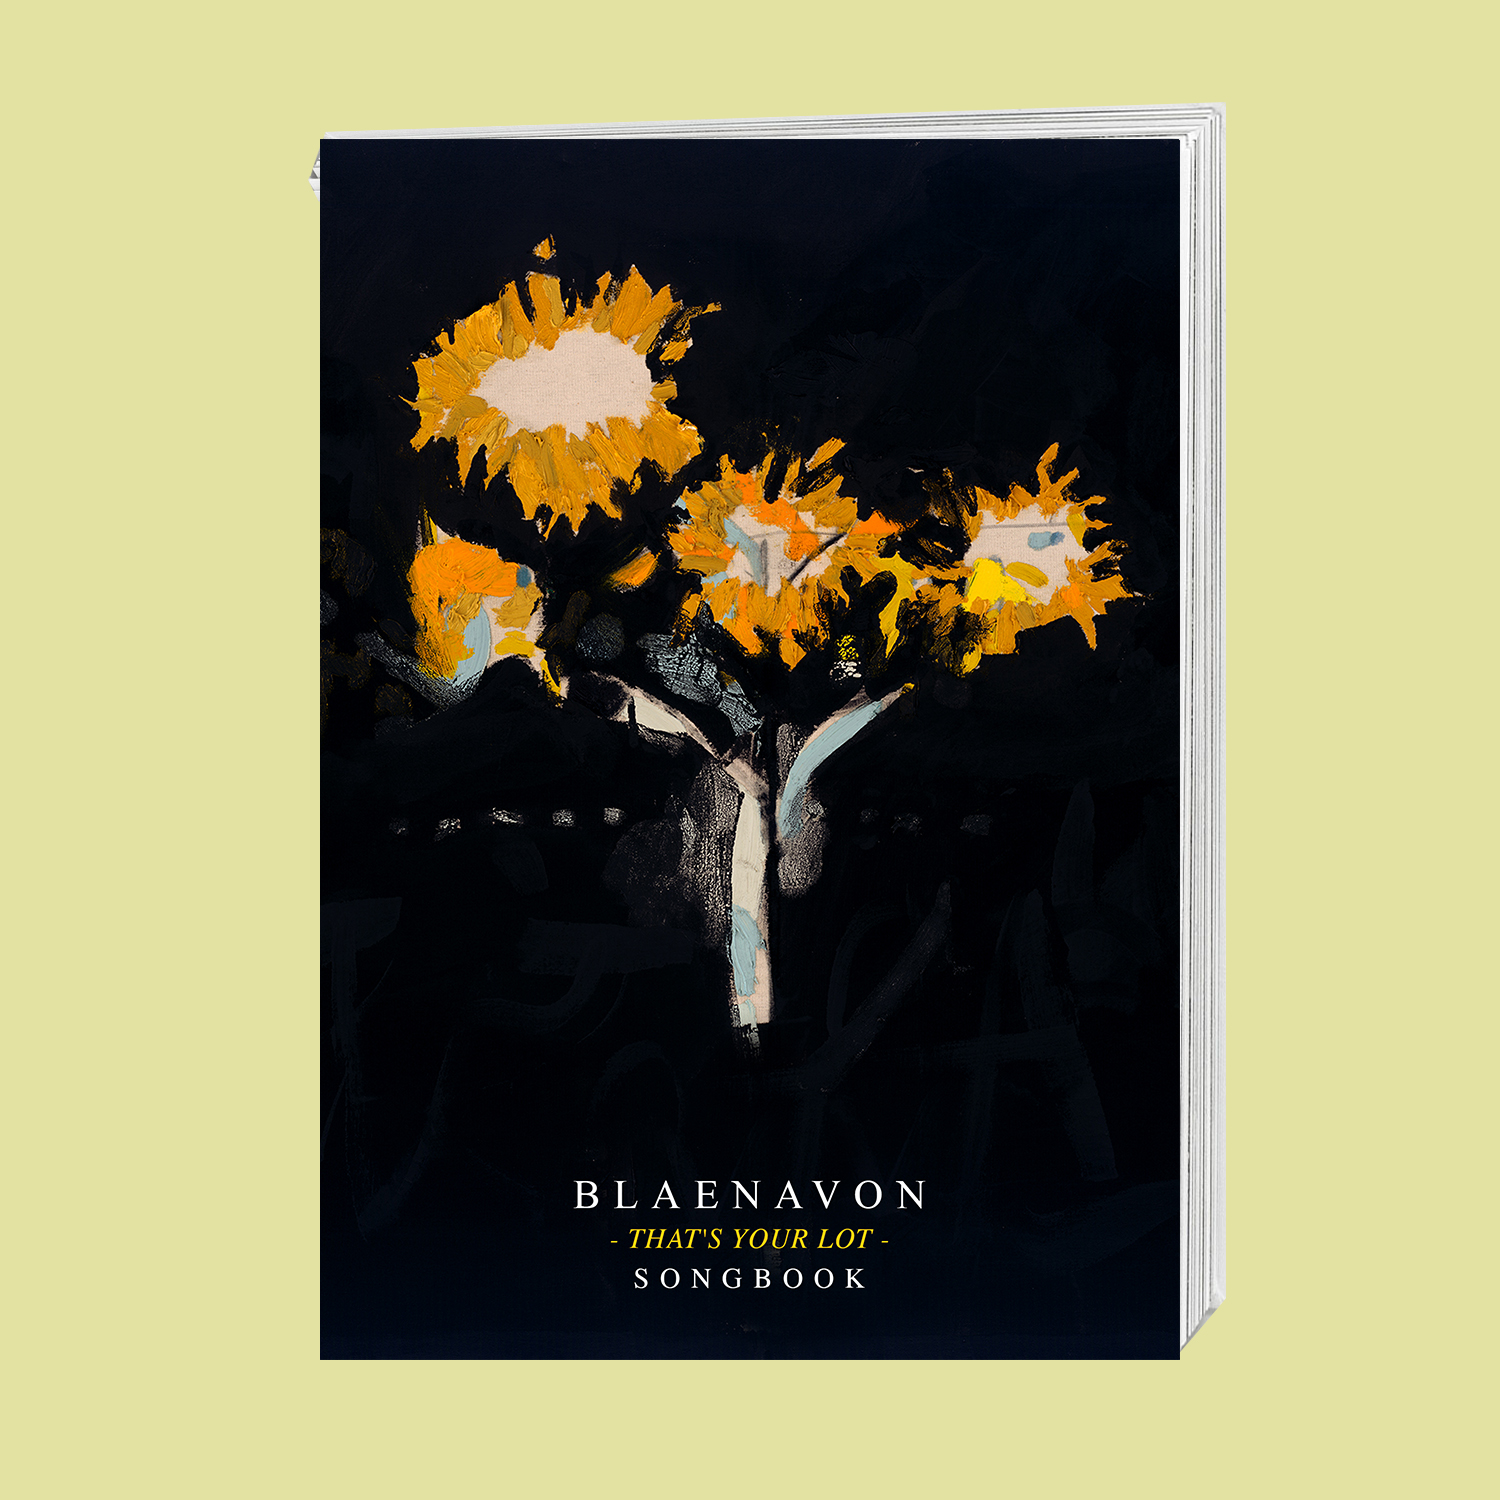 That's Your Lot Songbook - Blaenavon